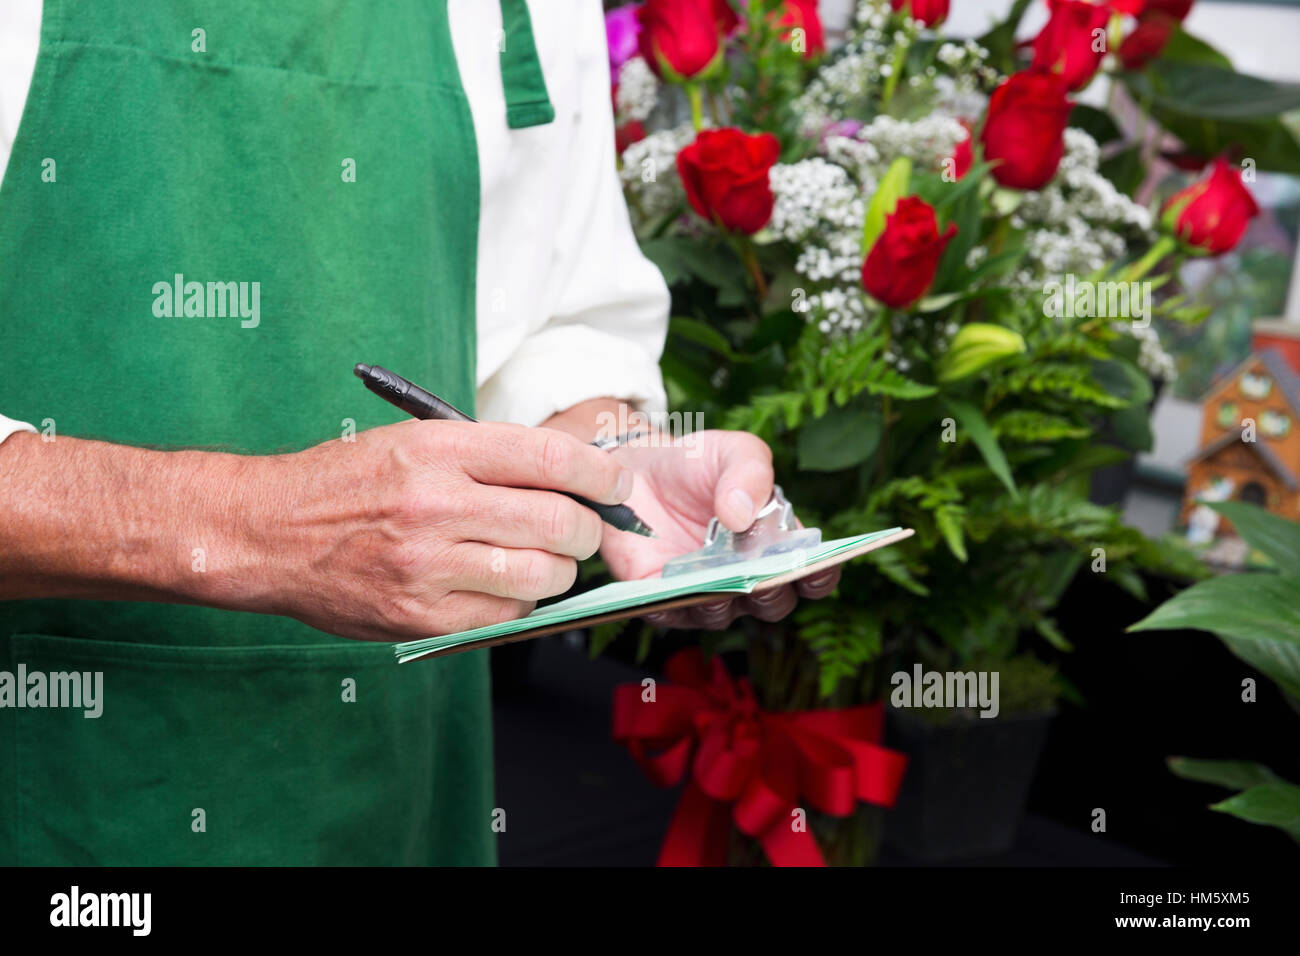 Florist writing down order - Stock Image